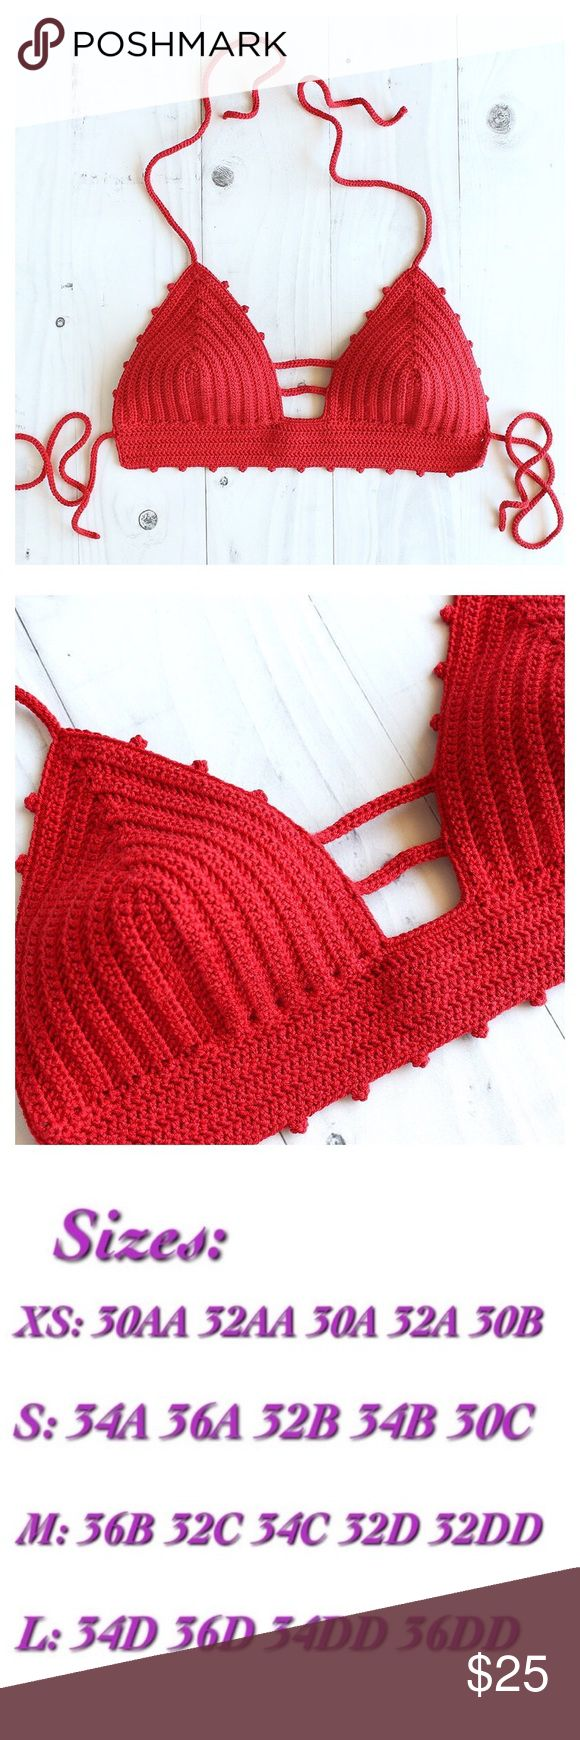 Red picot stitch bralette •hand crocheted with 100% acrylic yarn  • perfect for sunny weather ☀️  • check out size chart and allow 5-10 business days for any order to ship 💕 Tops